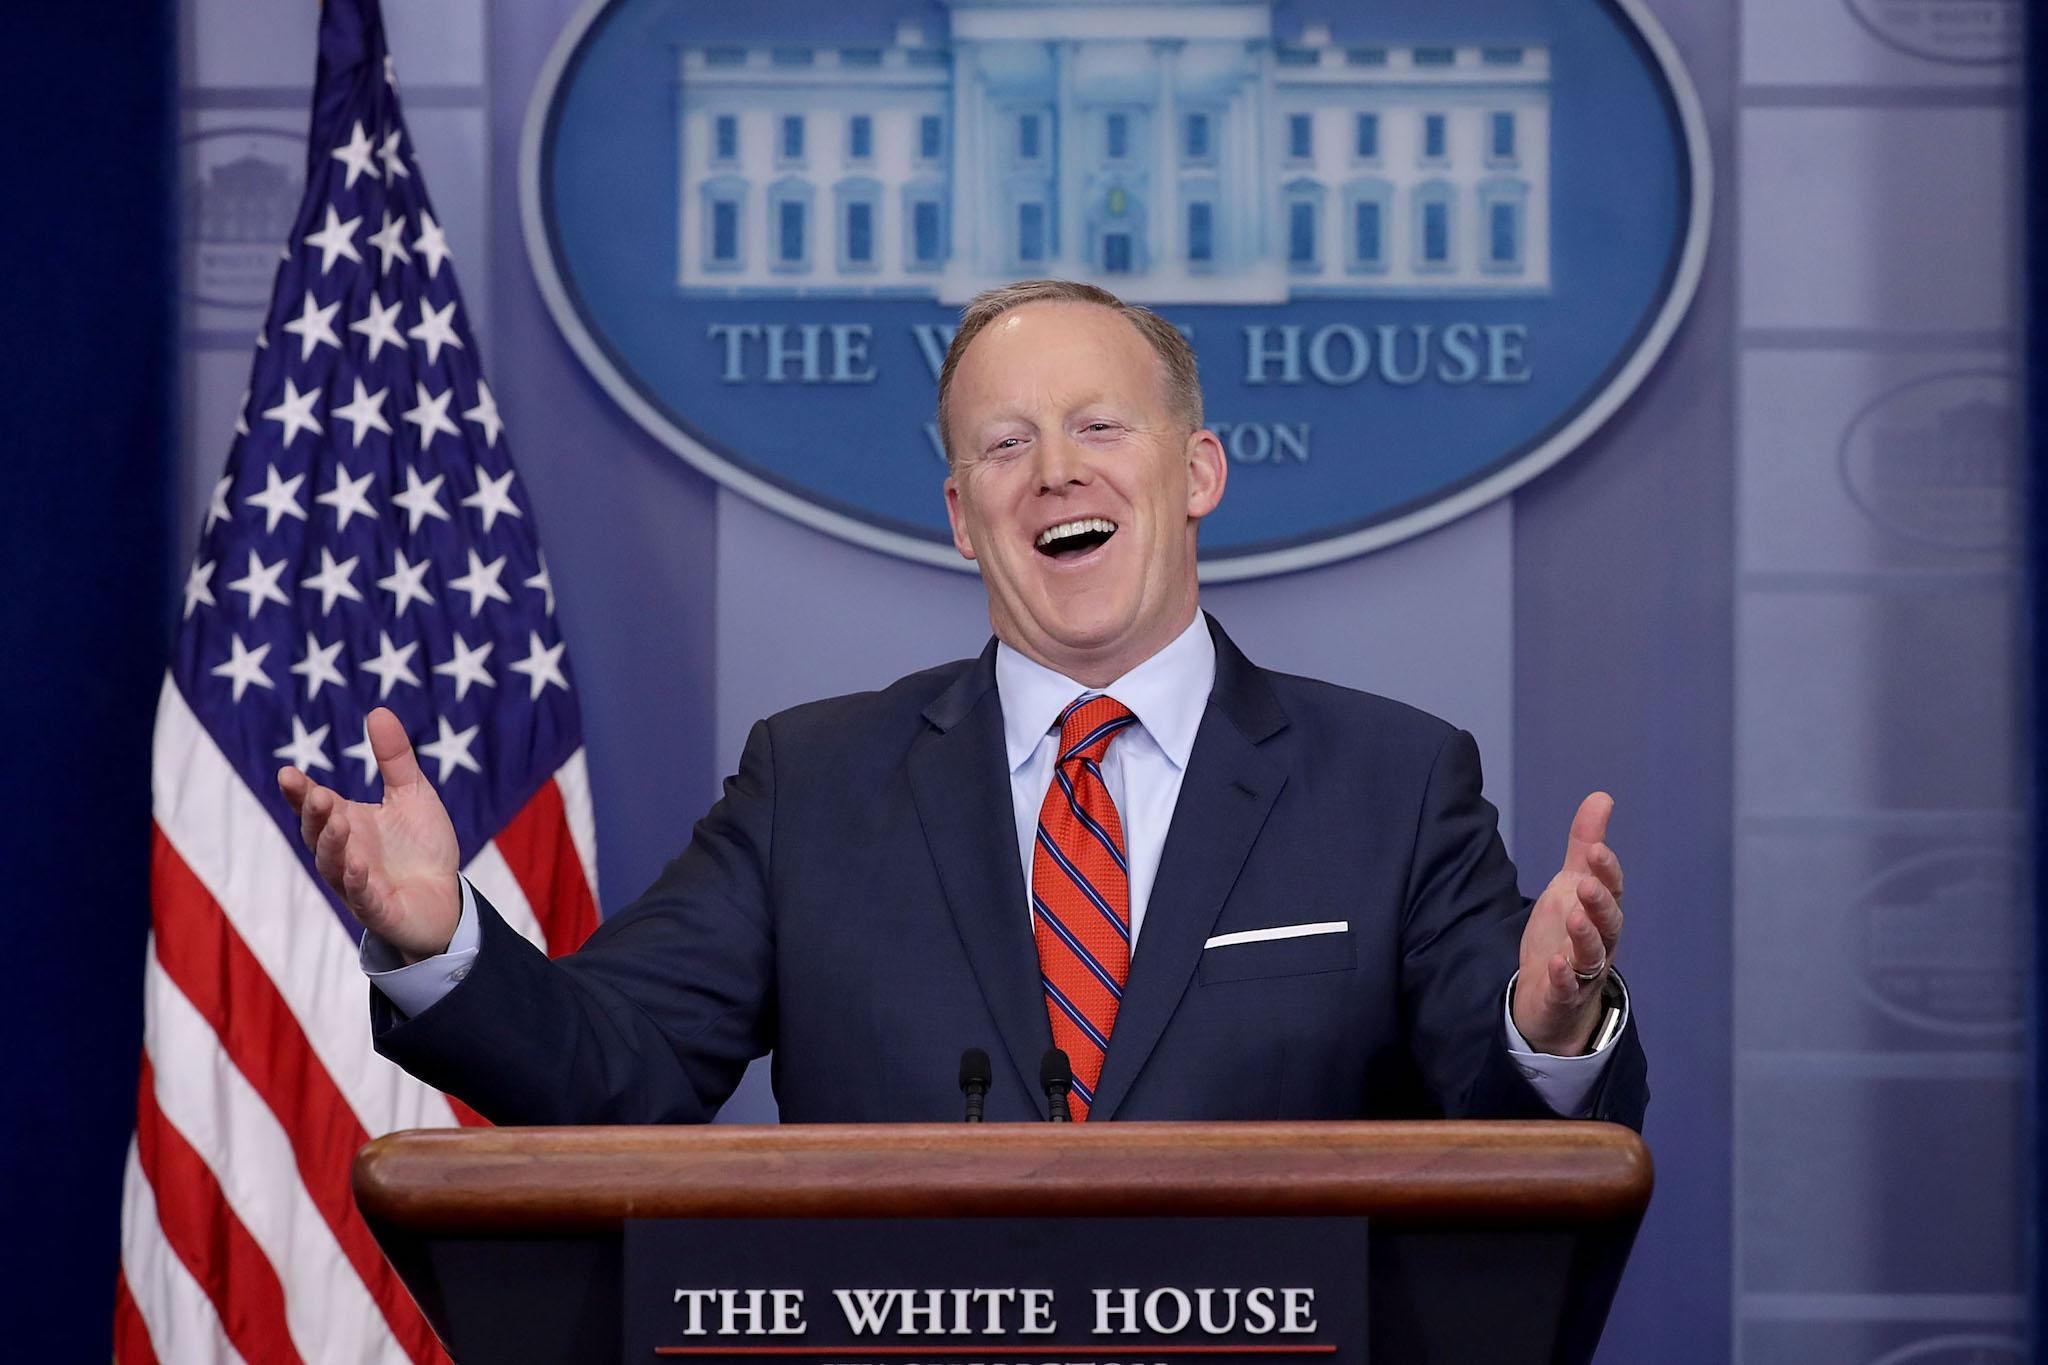 Sean Spicer book summary: The most important moments as White House press secretary reveals life working for Trump